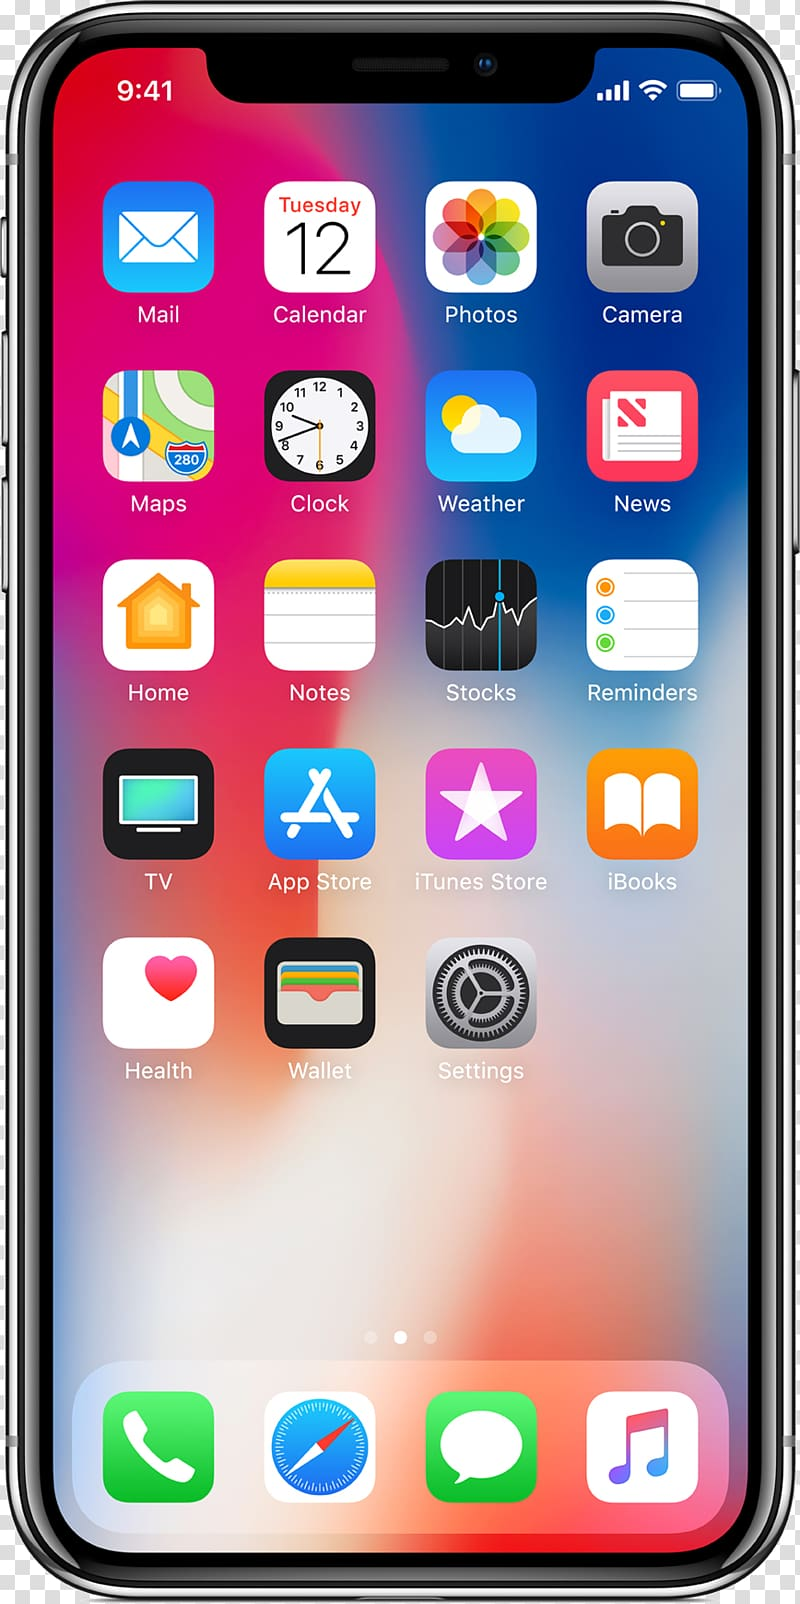 Iphone x image clipart picture black and white stock Space gray iPhone X showing IOS and , iPhone 4 IPhone 8 Plus ... picture black and white stock